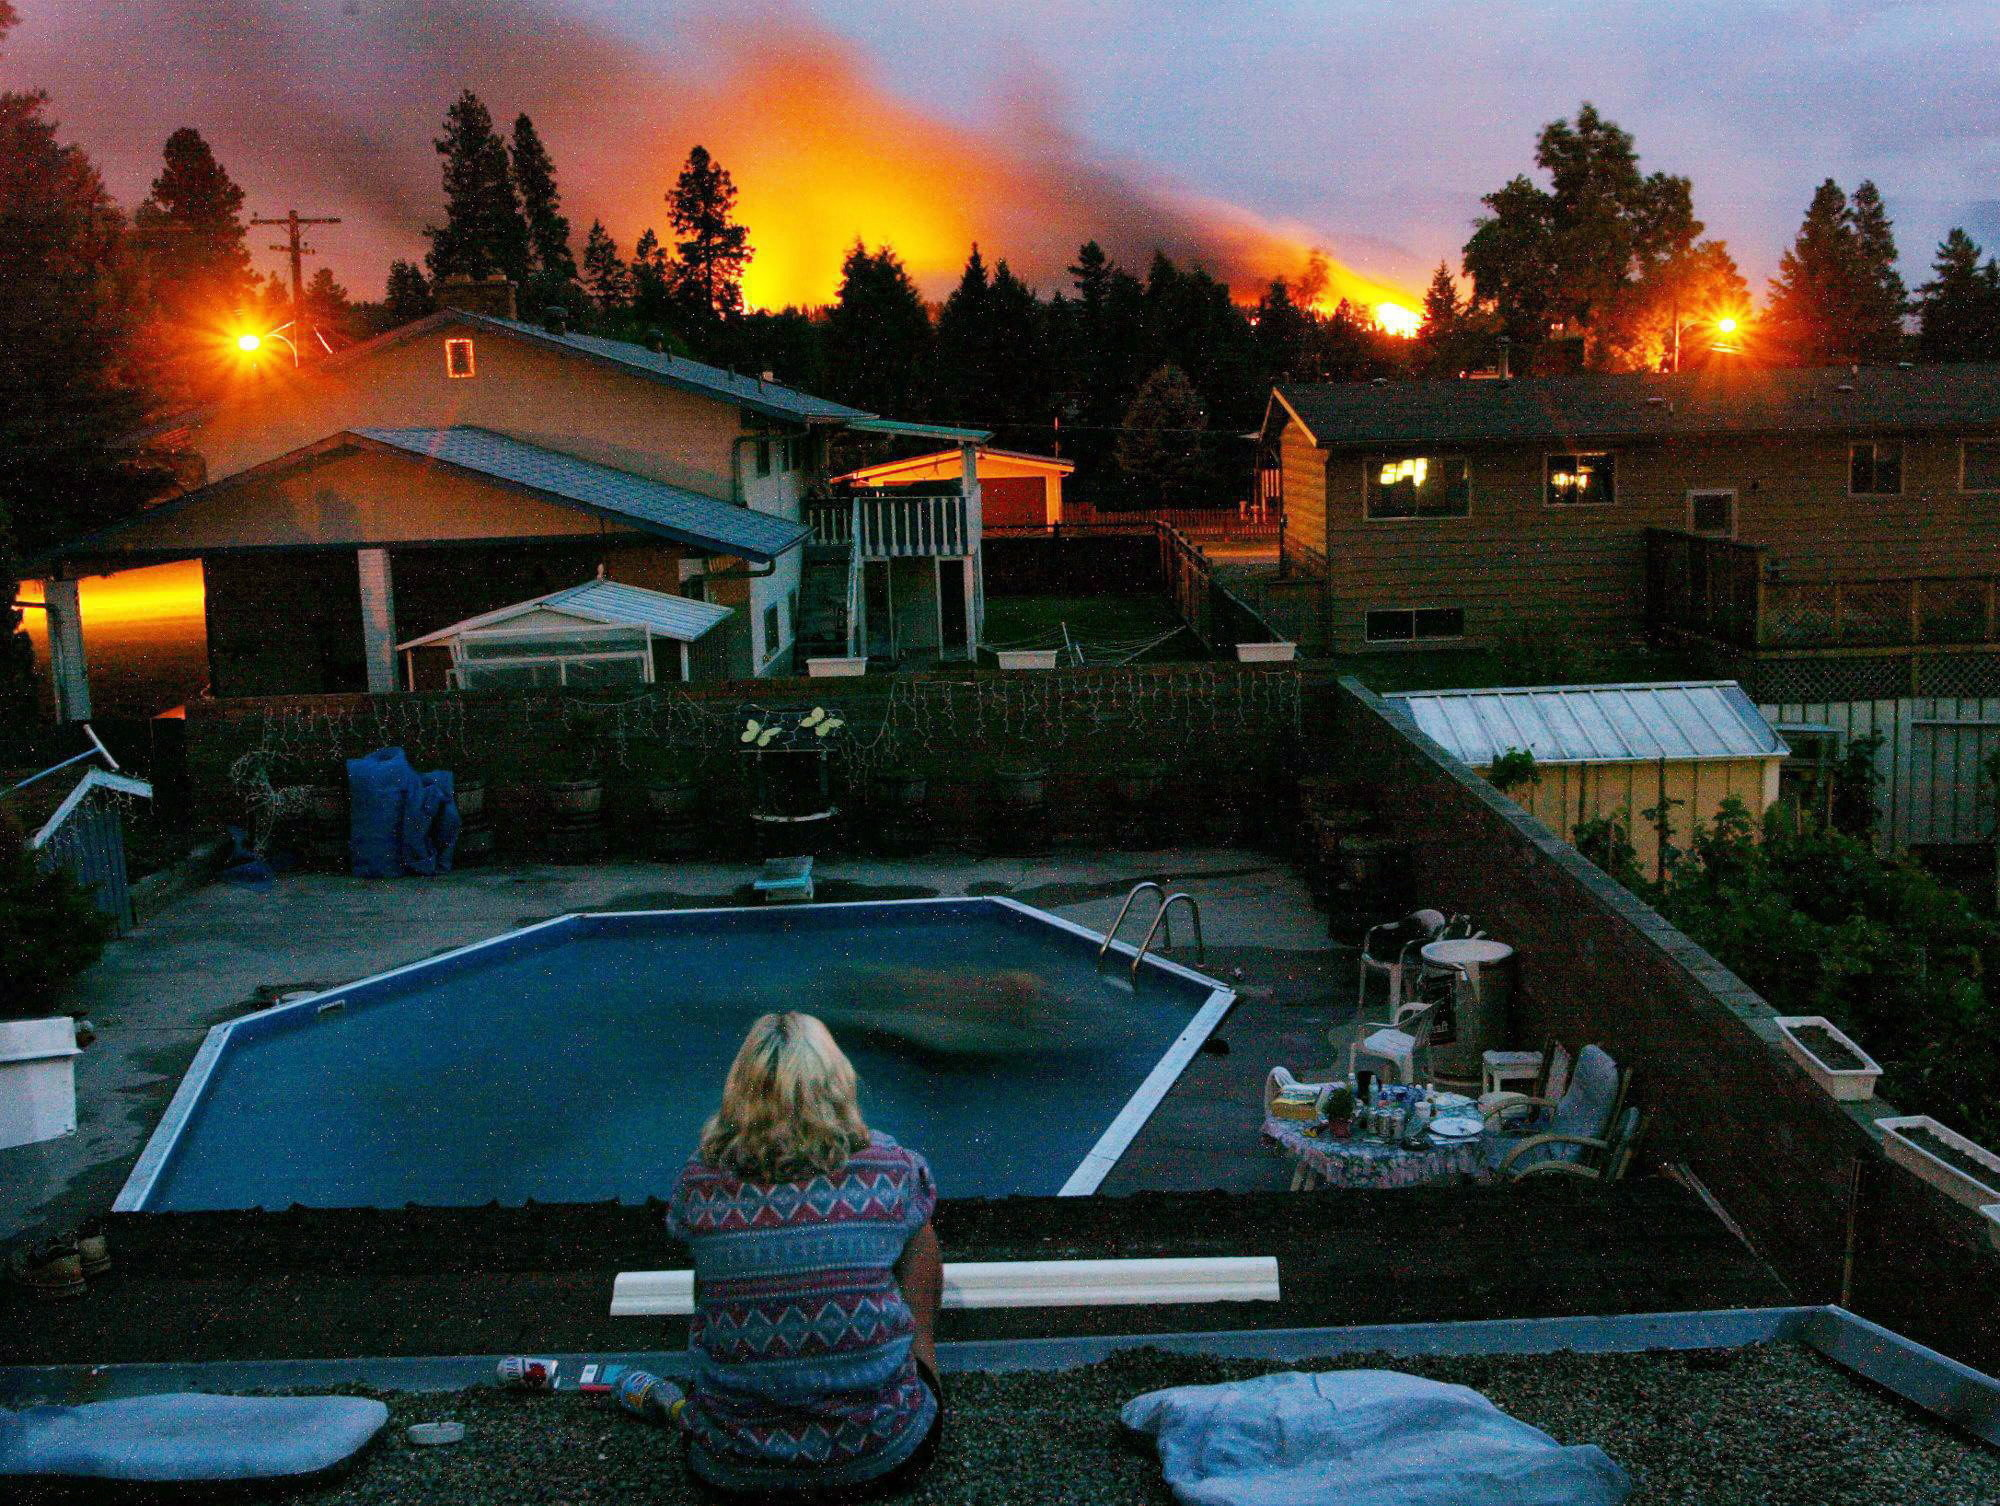 A resident watches the approaching flames in Kelowna on Aug. 22, 2003. More than 2,400 wildfires ravaged B.C. that summer. (THE CANADIAN PRESS/Rich Lam)